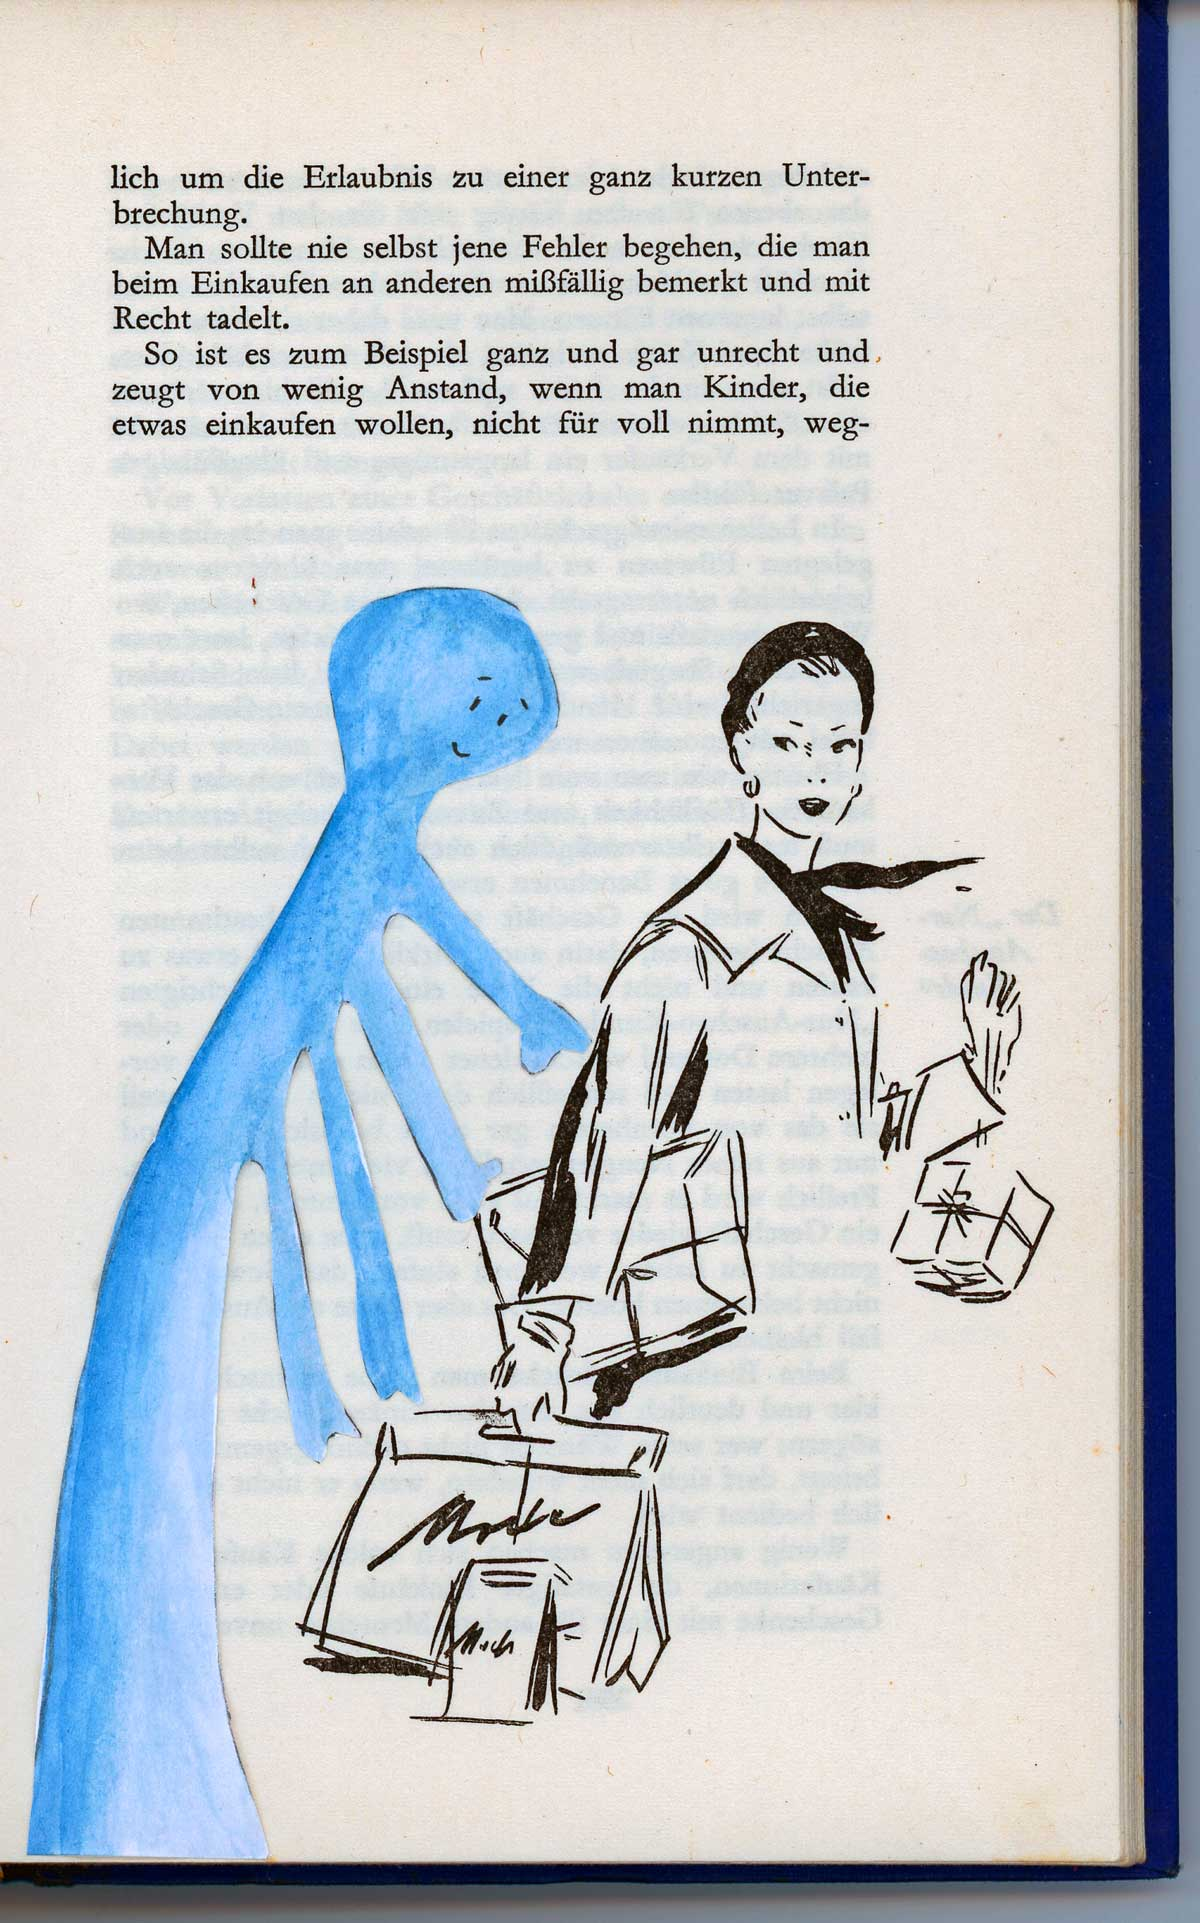 Be Creative #190 - Polite monsters go shopping, © Ines Häufler, 2011